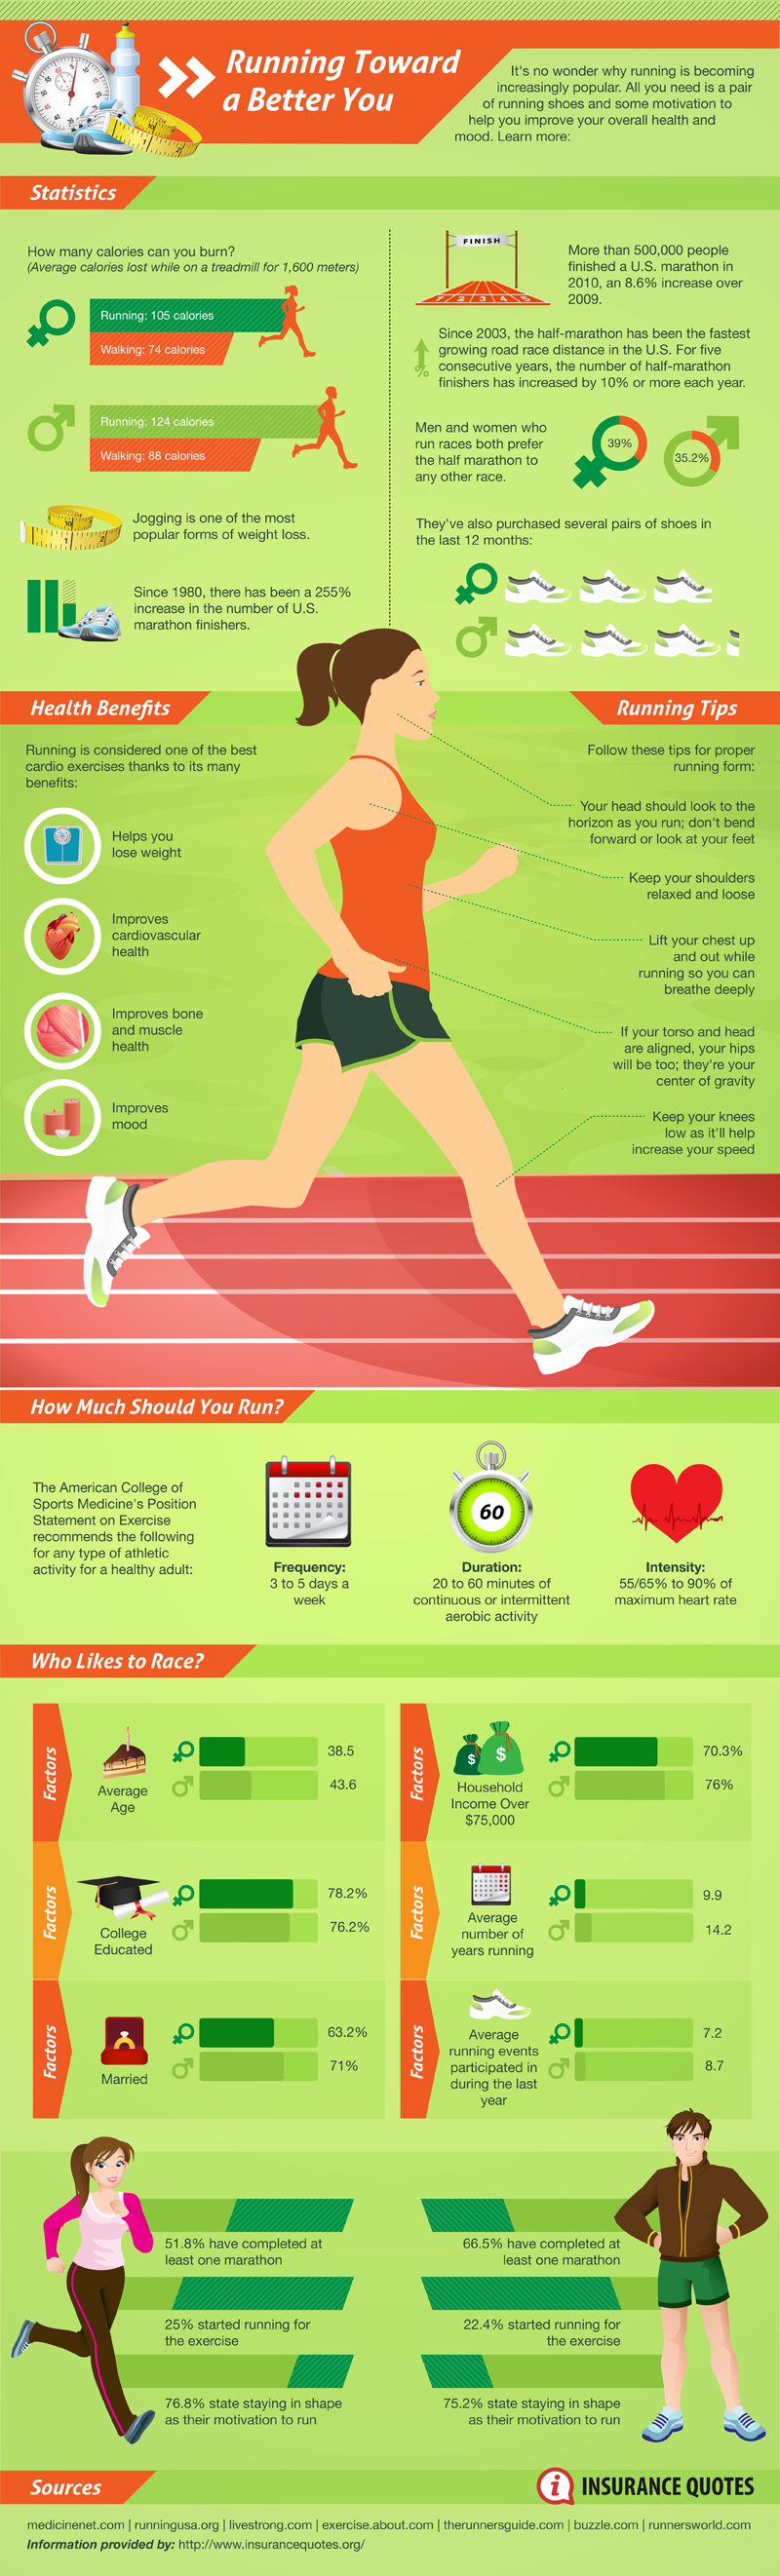 Running Statistics and Benefits